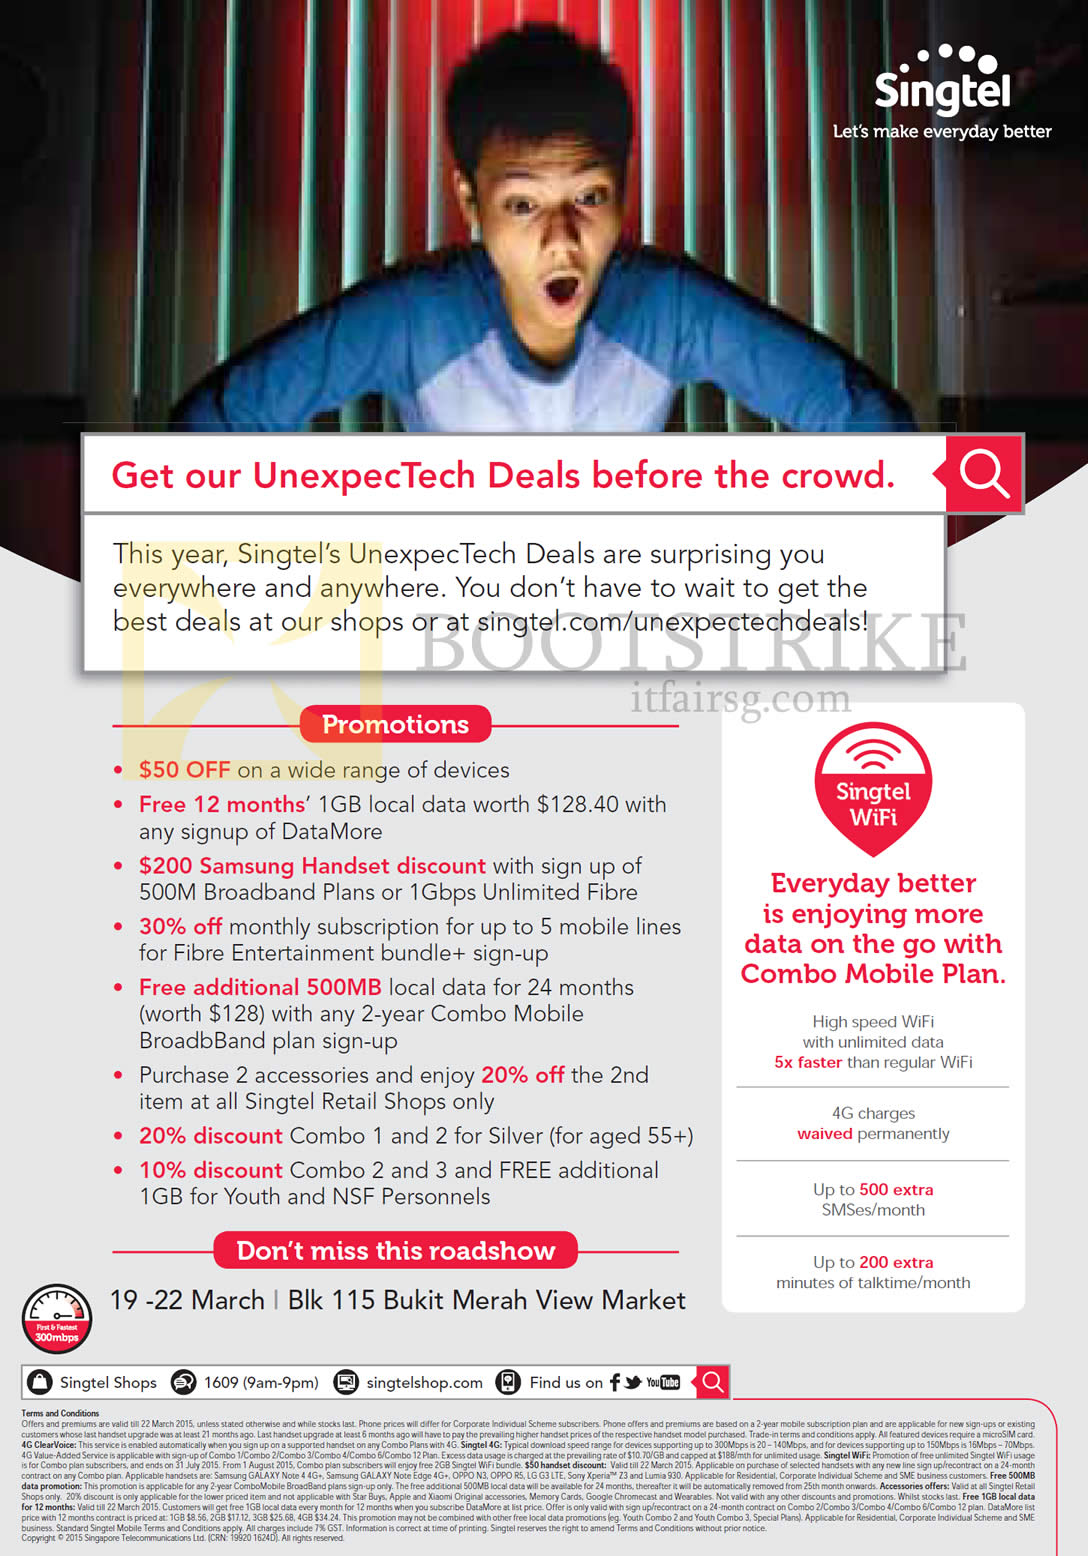 IT SHOW 2015 price list image brochure of Singtel UnexpecTech Deals Highlights, Free 12 Months 1GB Local Data, Samsung Handset Discount, Bukit Merah View Market Roadshow